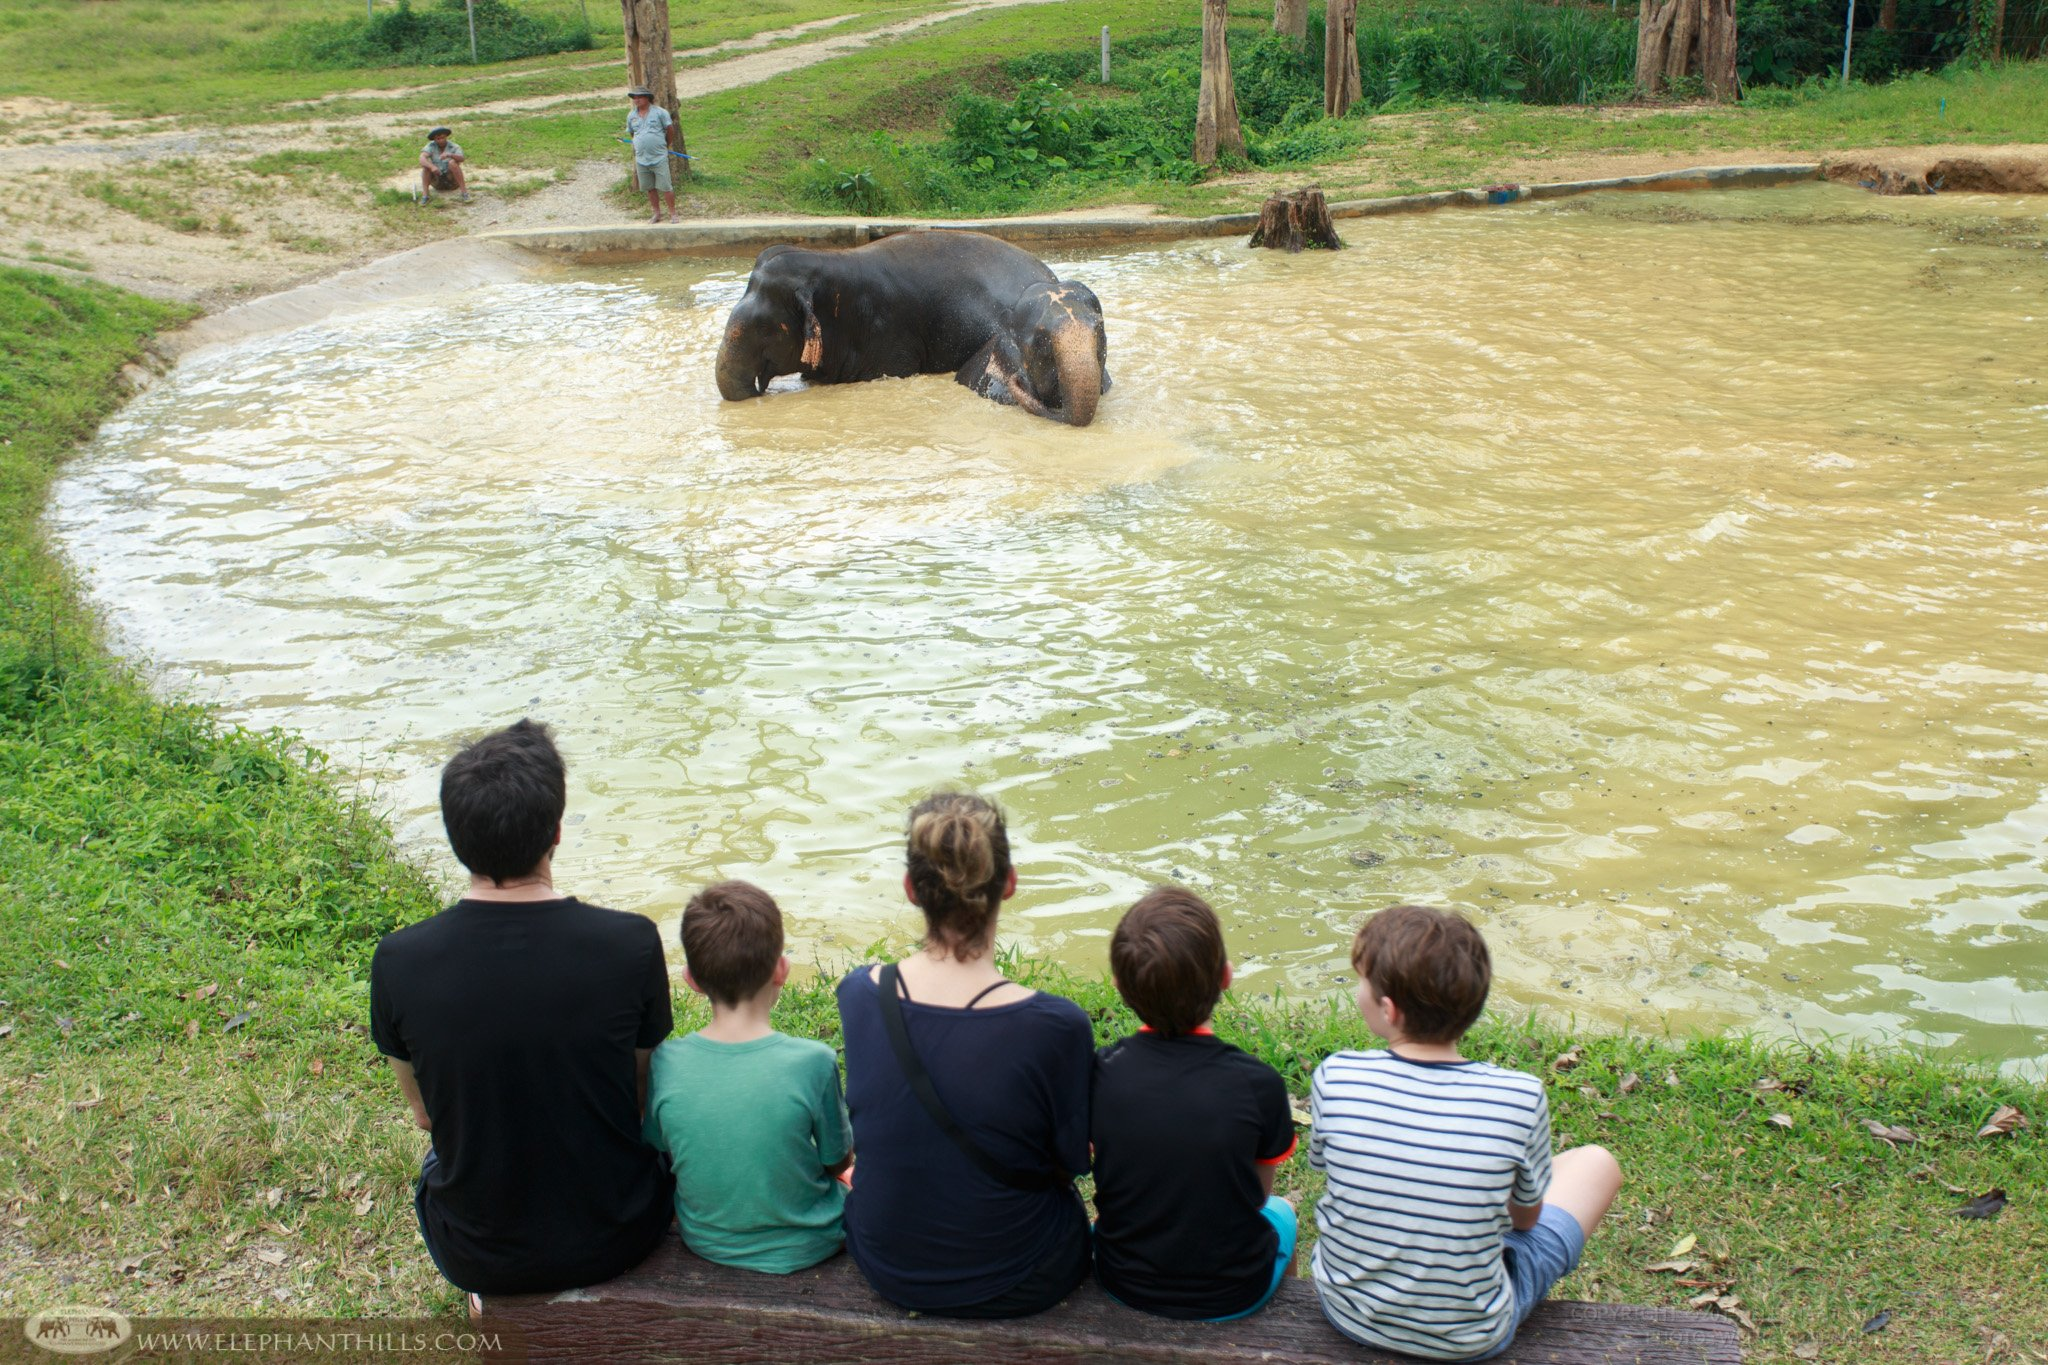 The family are watching an elephant playing in their swimming pool